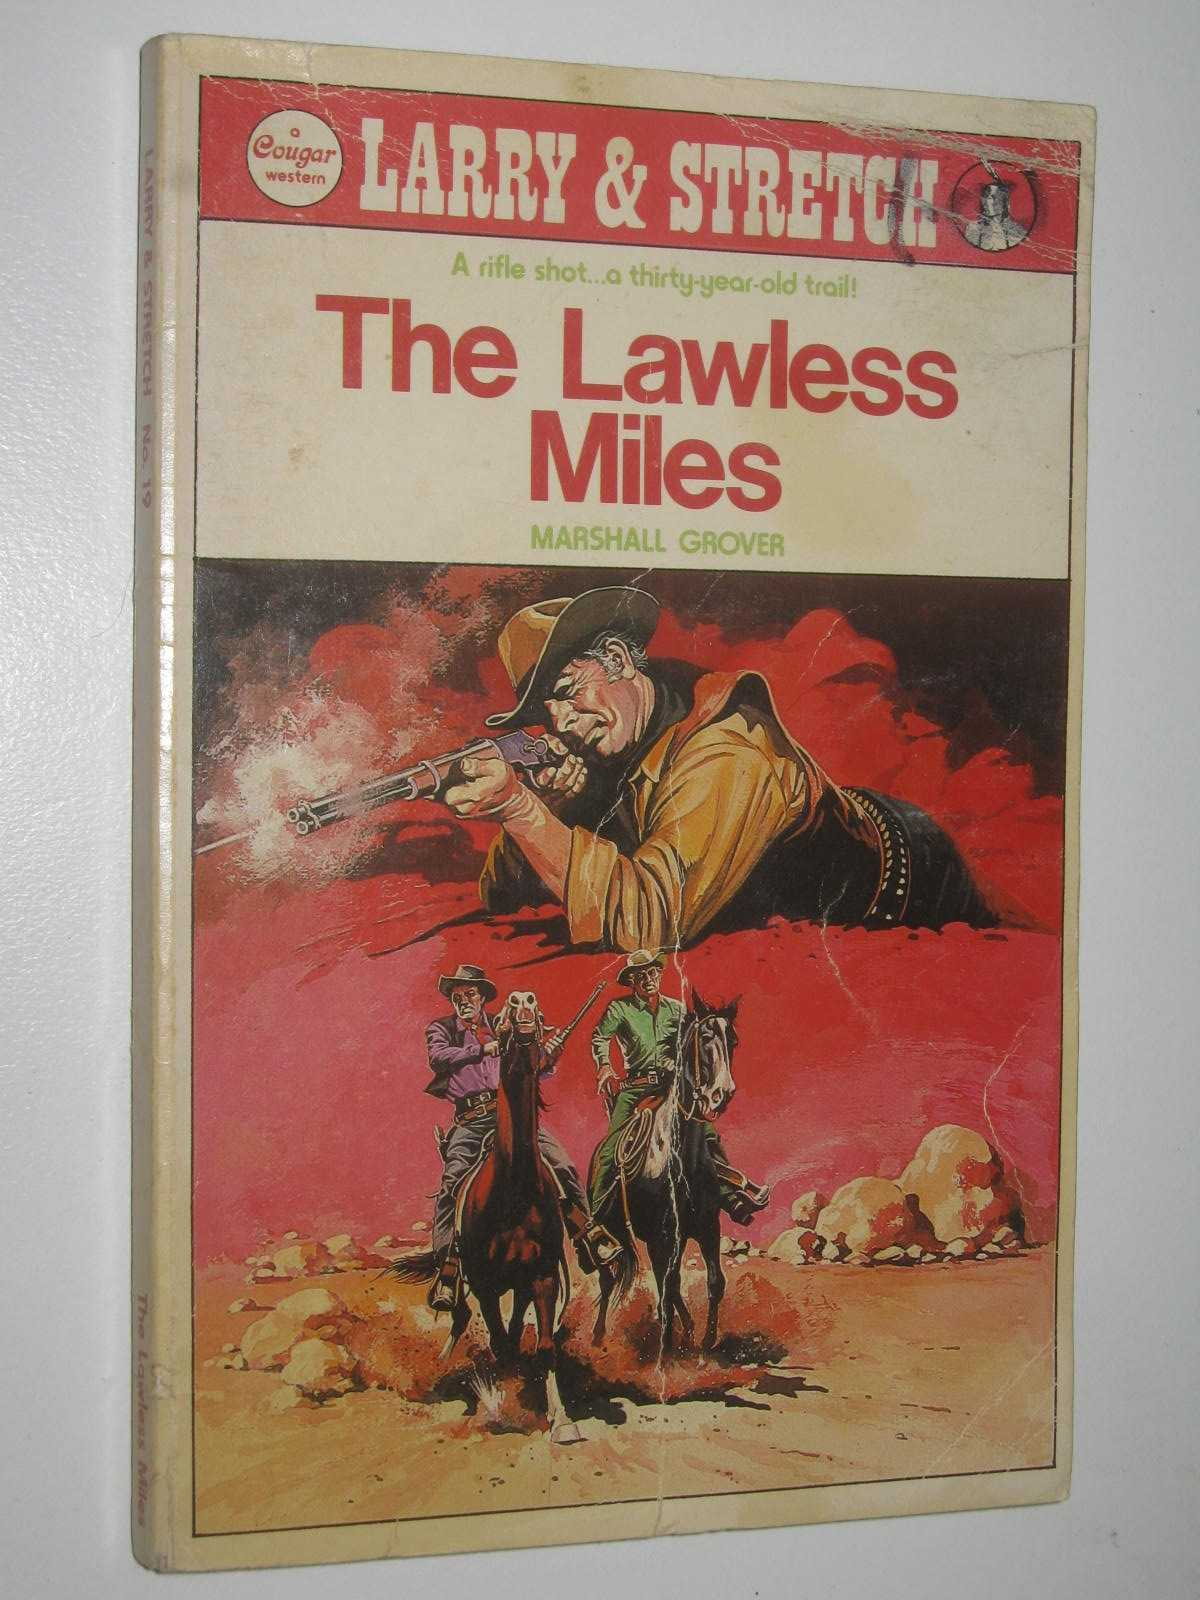 Image for The Lawless Miles - Larry and Stretch [Cougar Western] Series #19